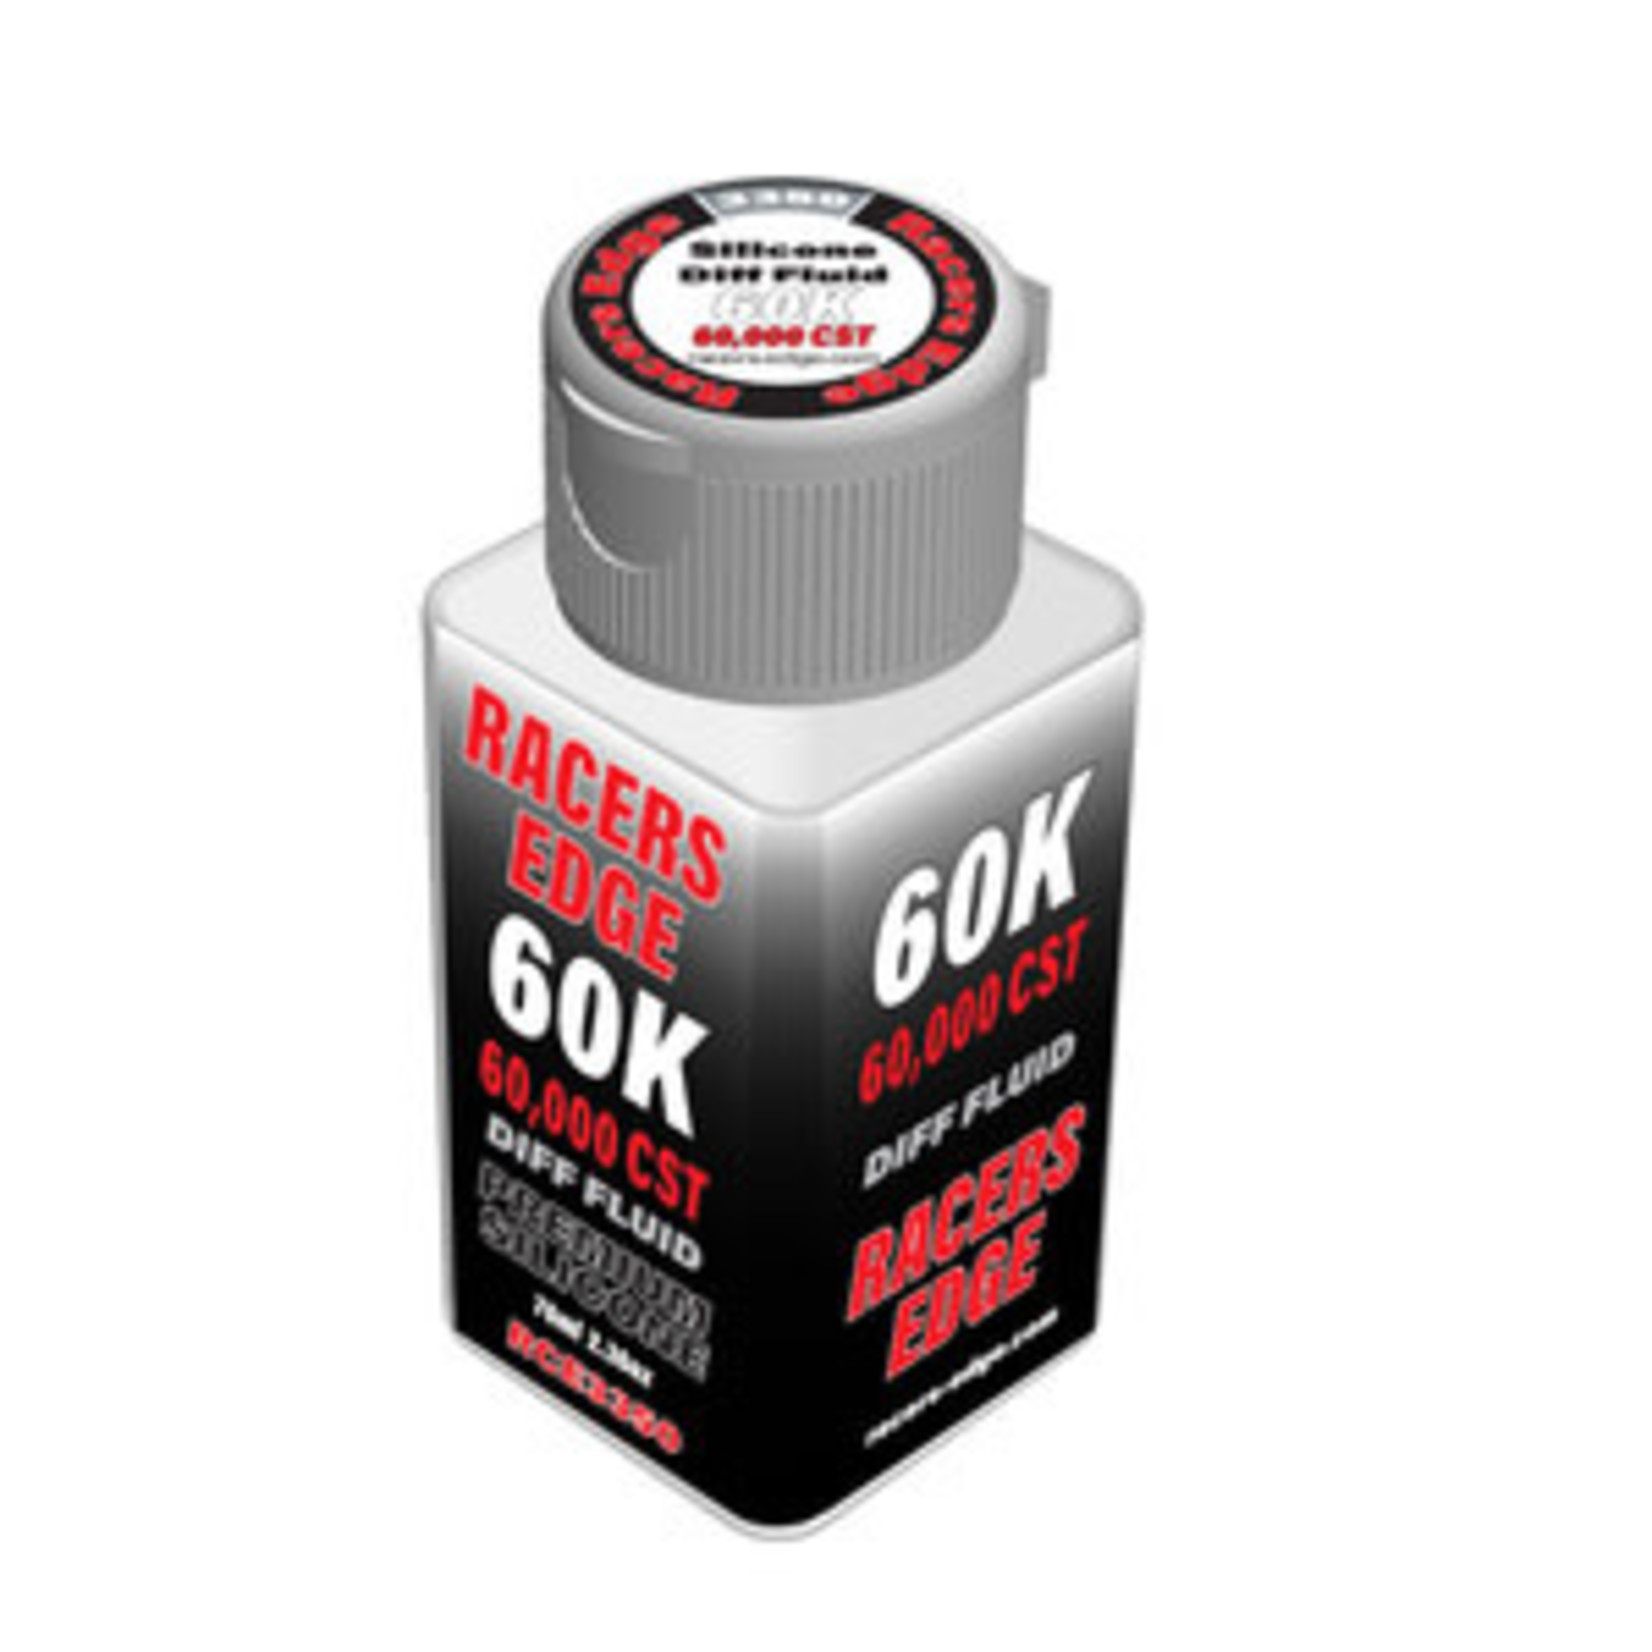 Racers Edge 60,000cSt 70ml 2.36oz Pure Silicone Diff Fluid